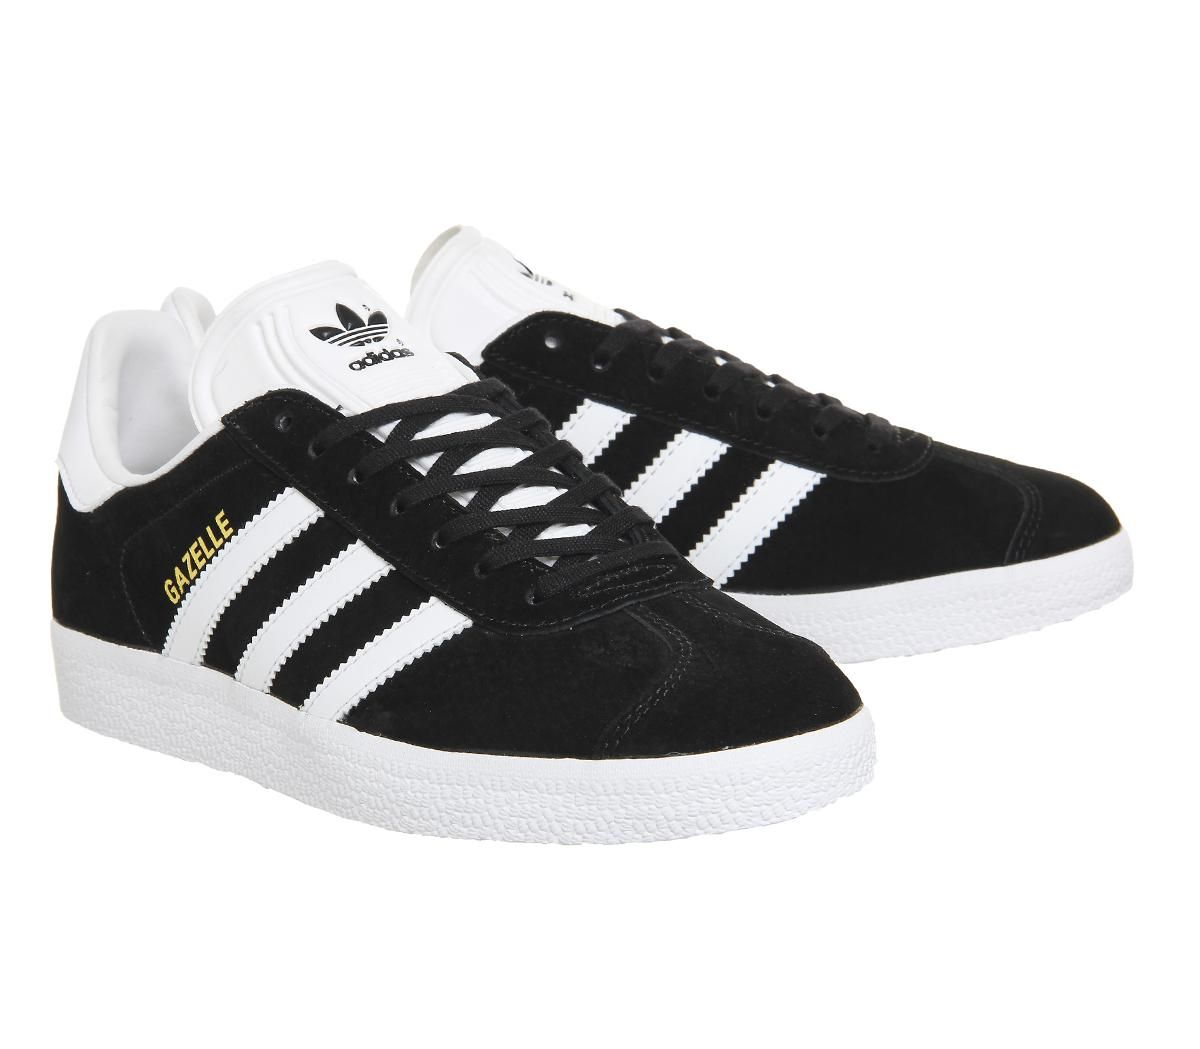 Details about Womens Adidas Gazelle Flash Trainers Grey White Trainers Shoes